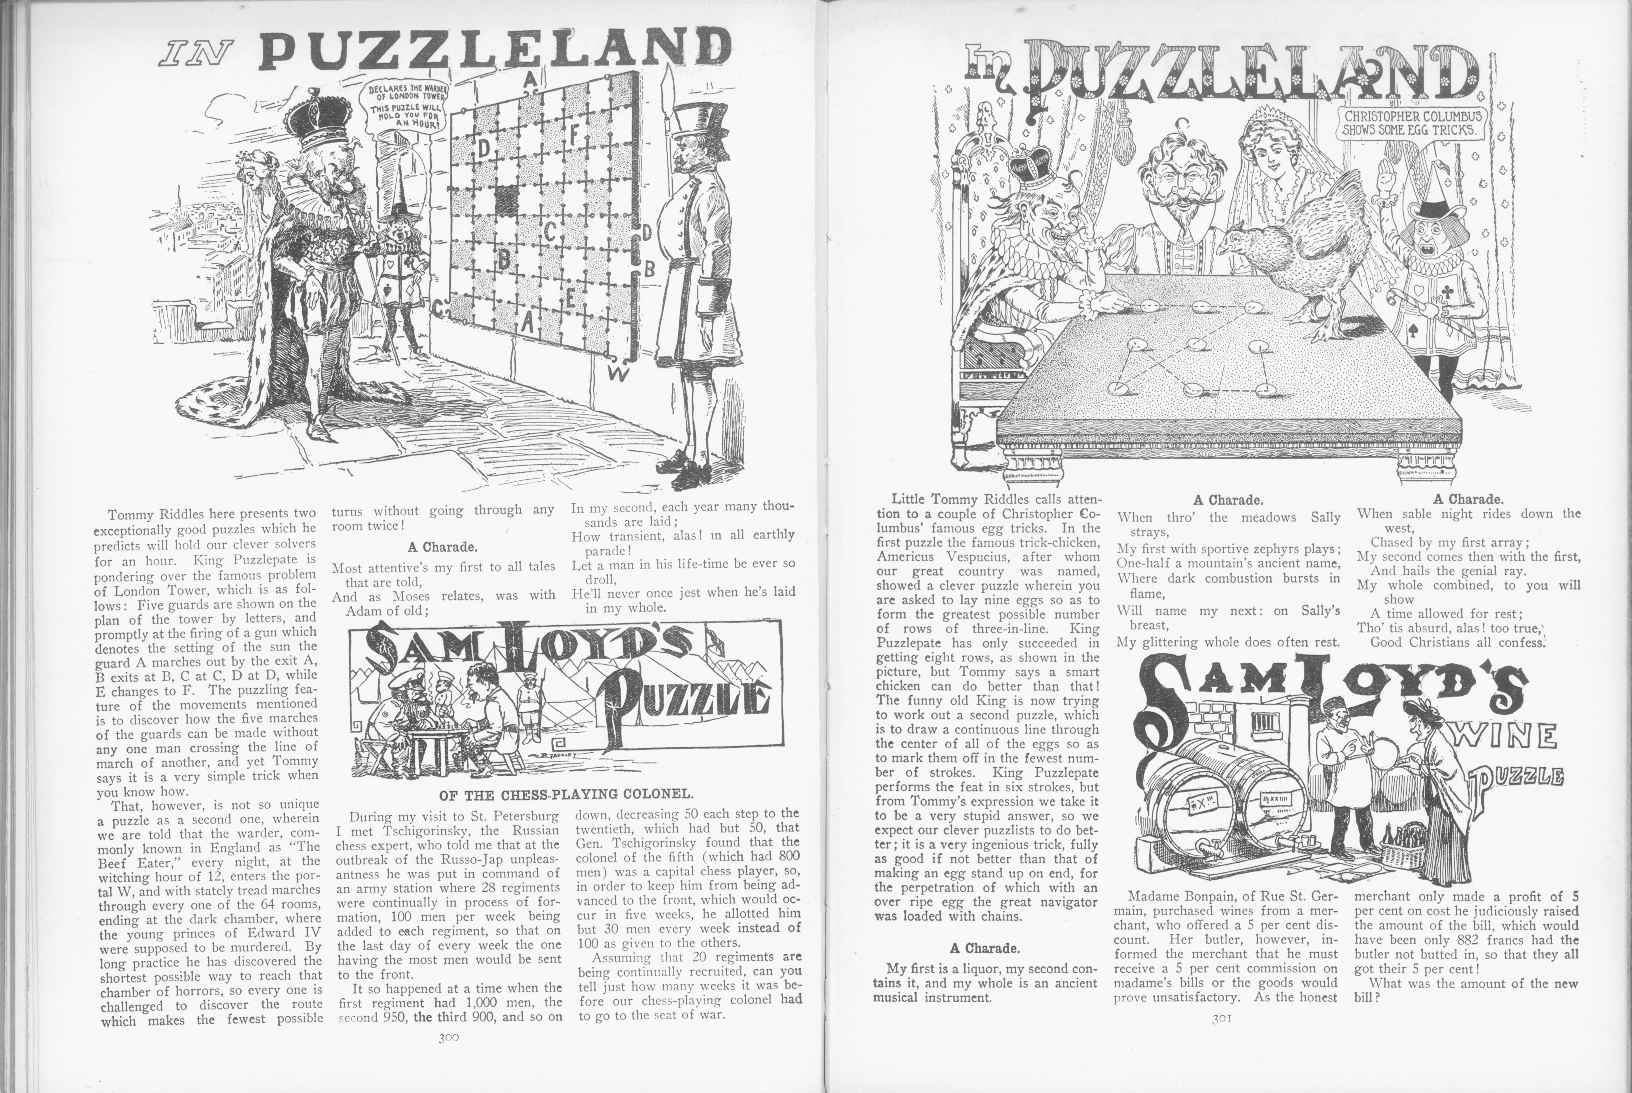 Sam Loyd - Cyclopedia of Puzzles - page 300-301